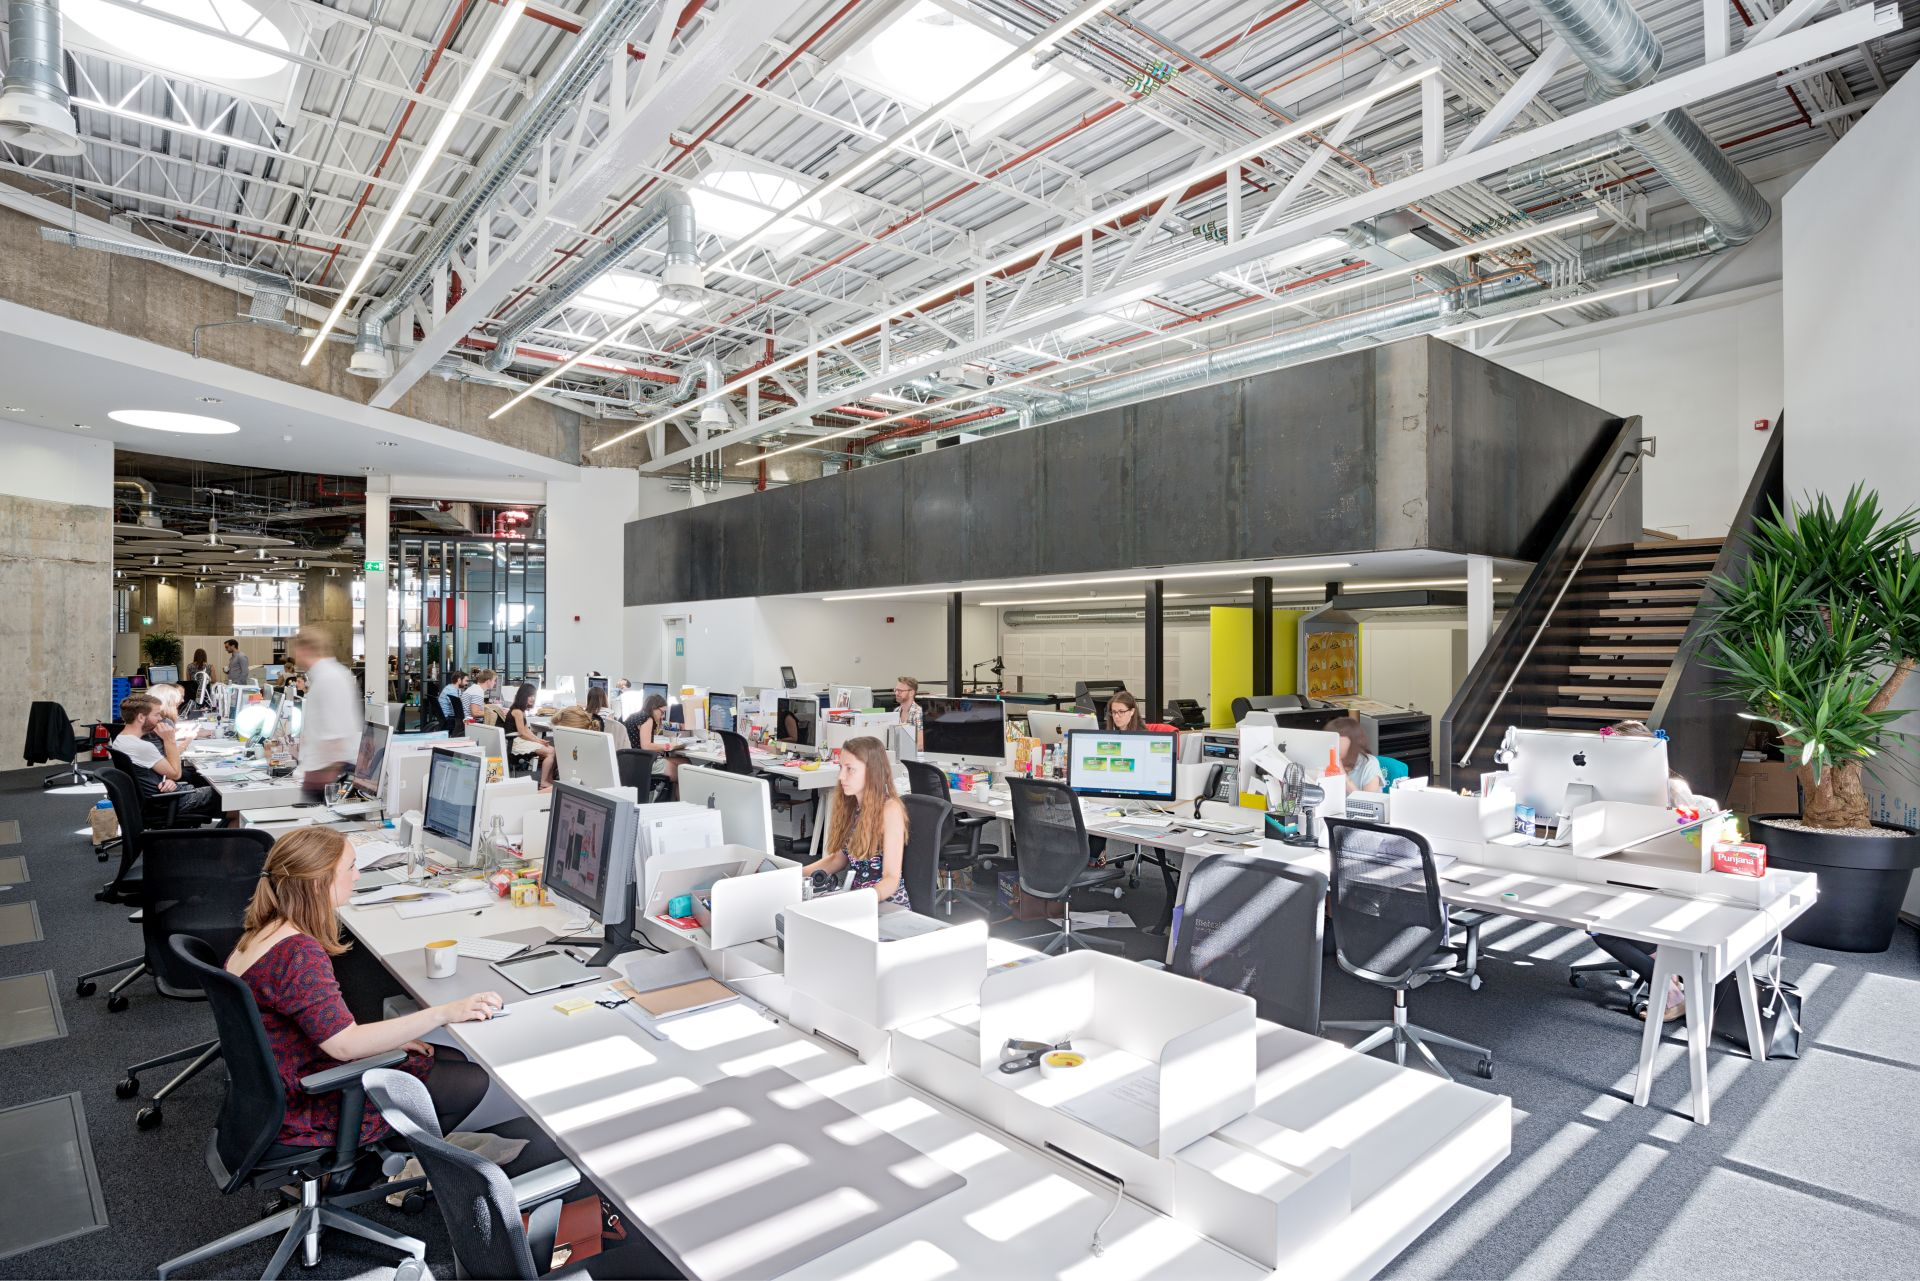 Open plan vs closed plan office design striking a balance for Open space office